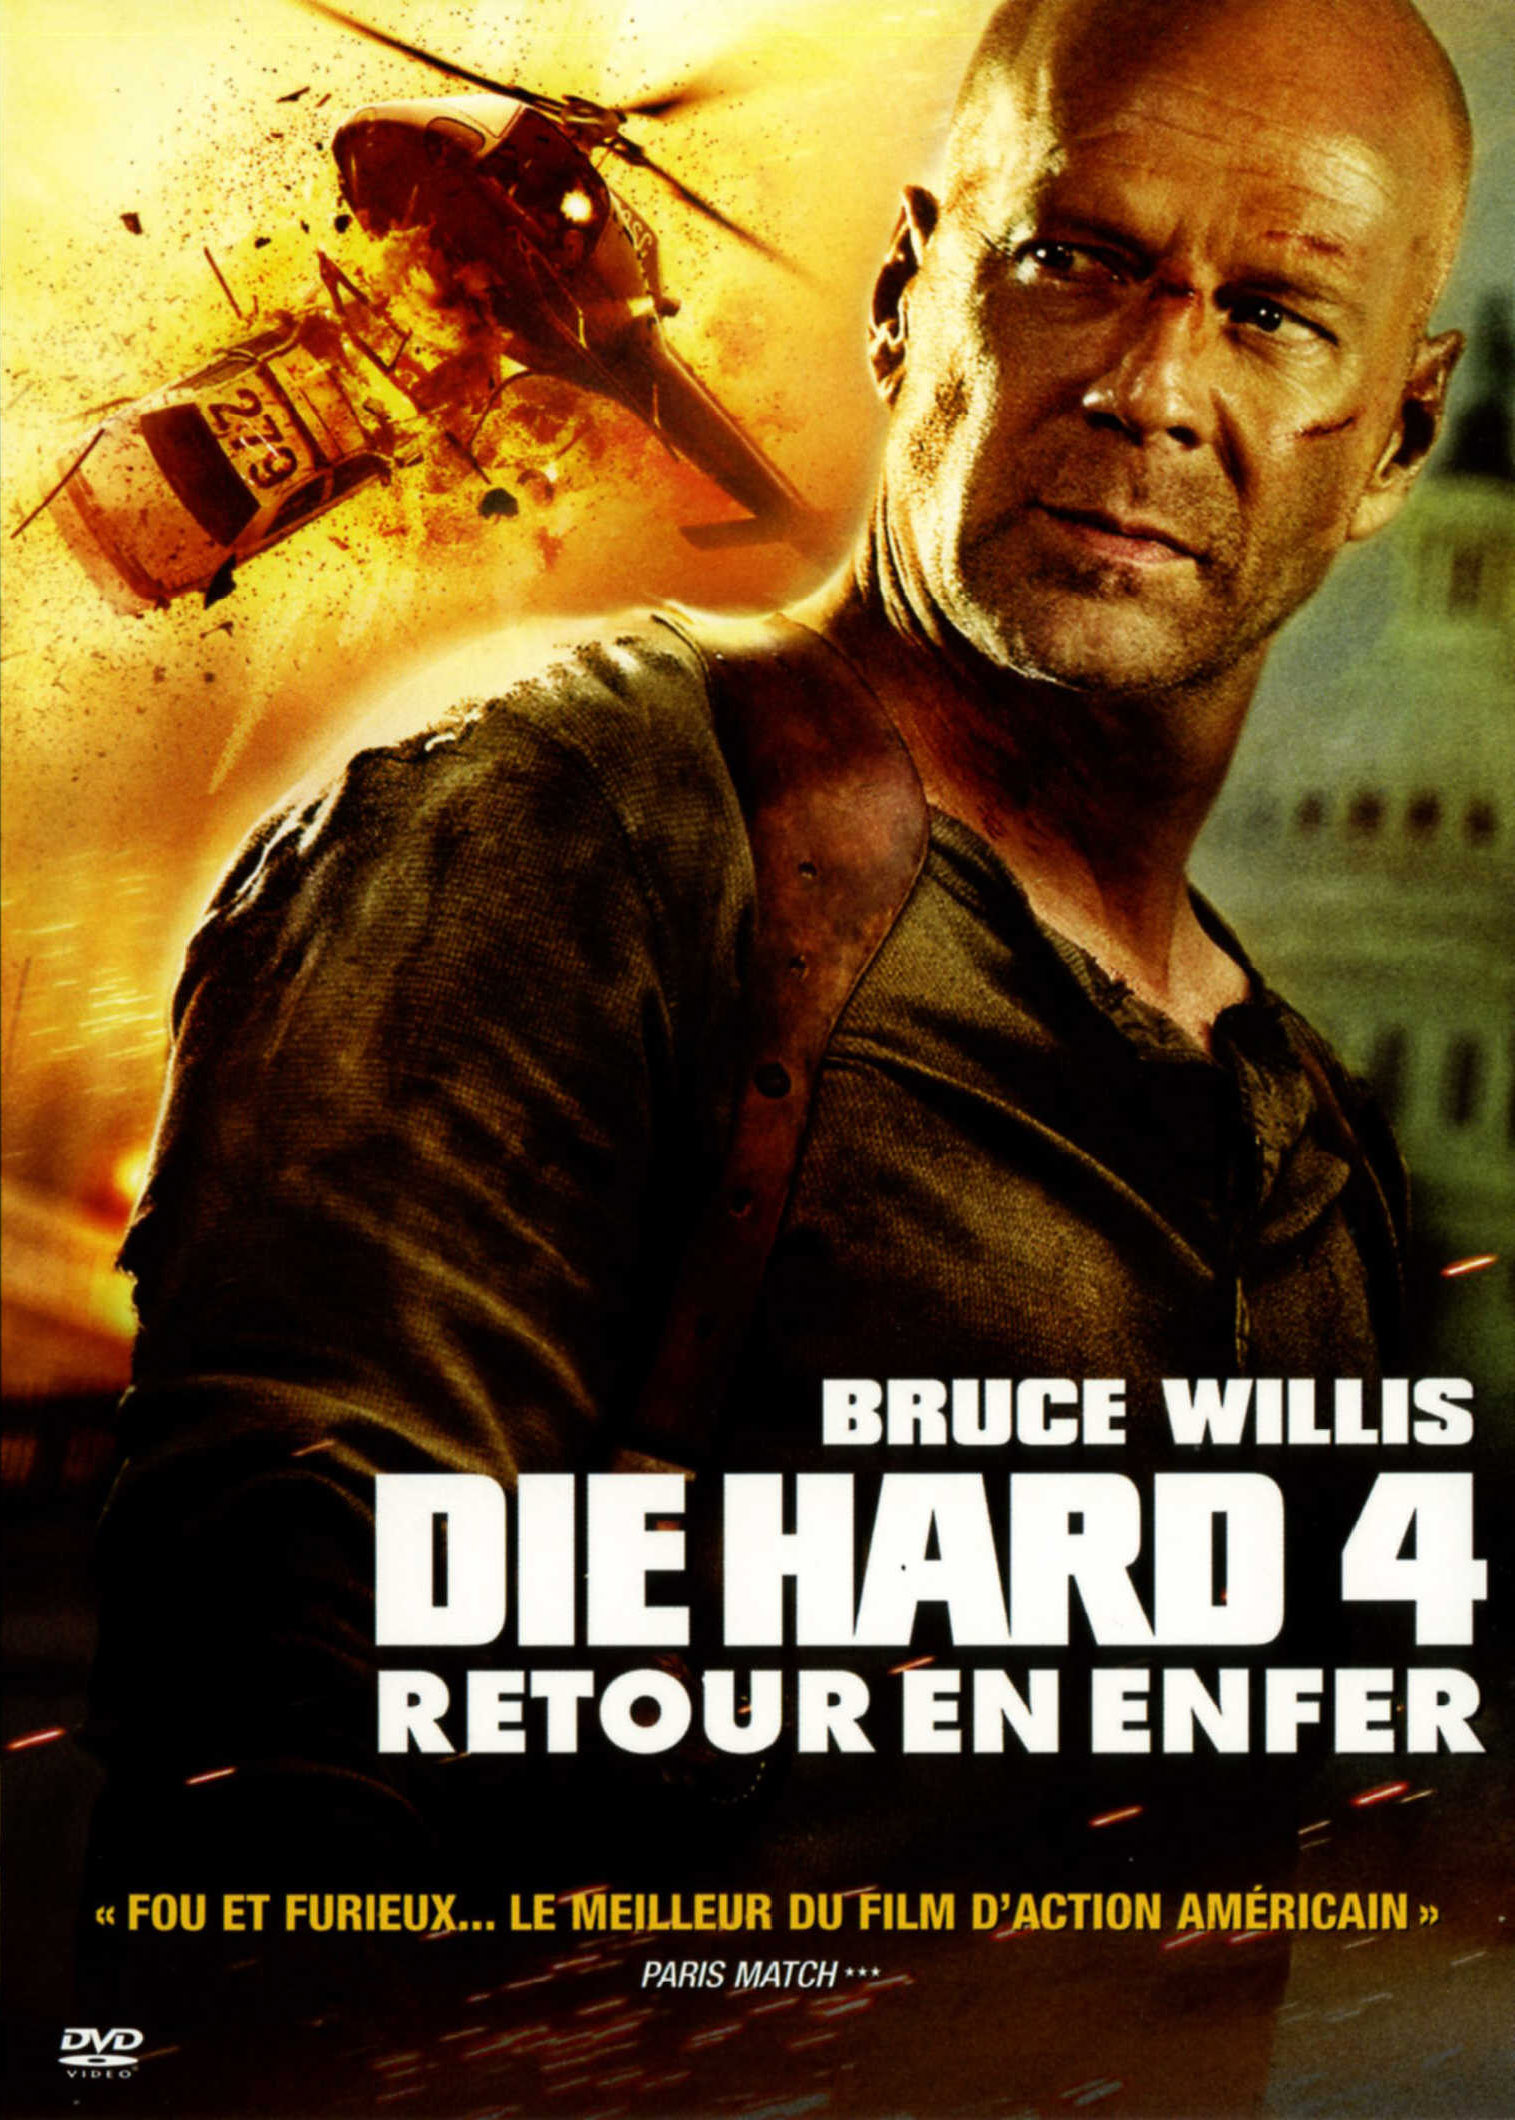 Die Hard 4 - retour en enfer - 20th Century Fox - Ciné Sanctuary: www.cine-sanctuary.com/film-die-hard-4-retour-en-enfer-vol-1-simple...